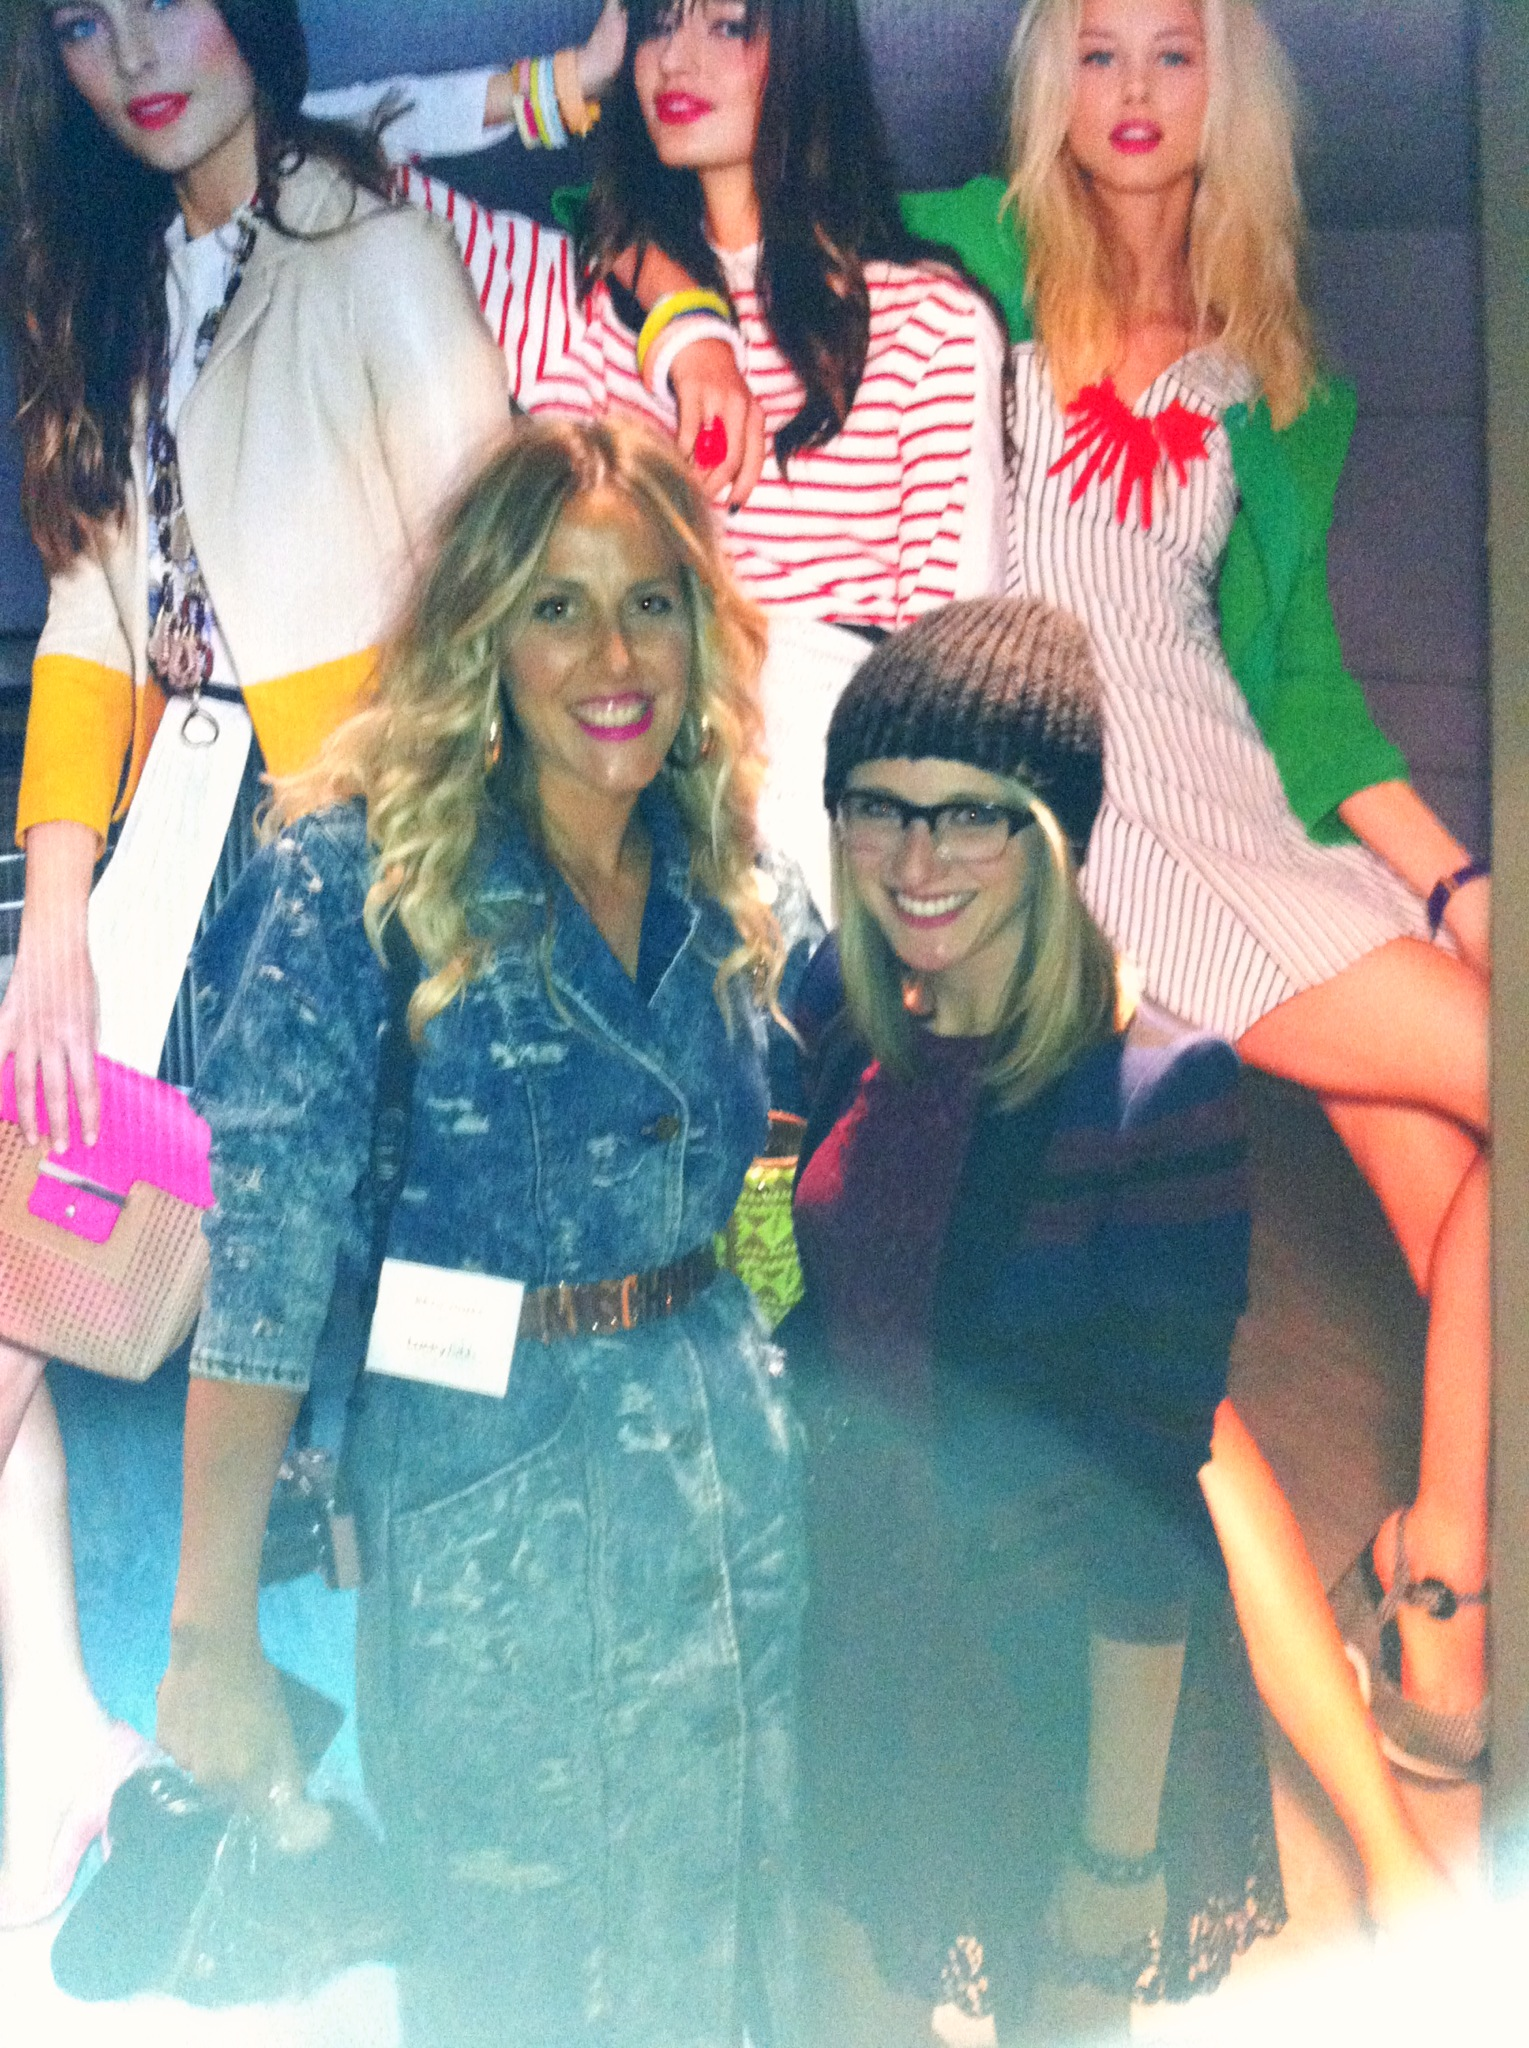 Scored a photo with one of my favorite bloggers, Beth Jones of B.Jones Style!